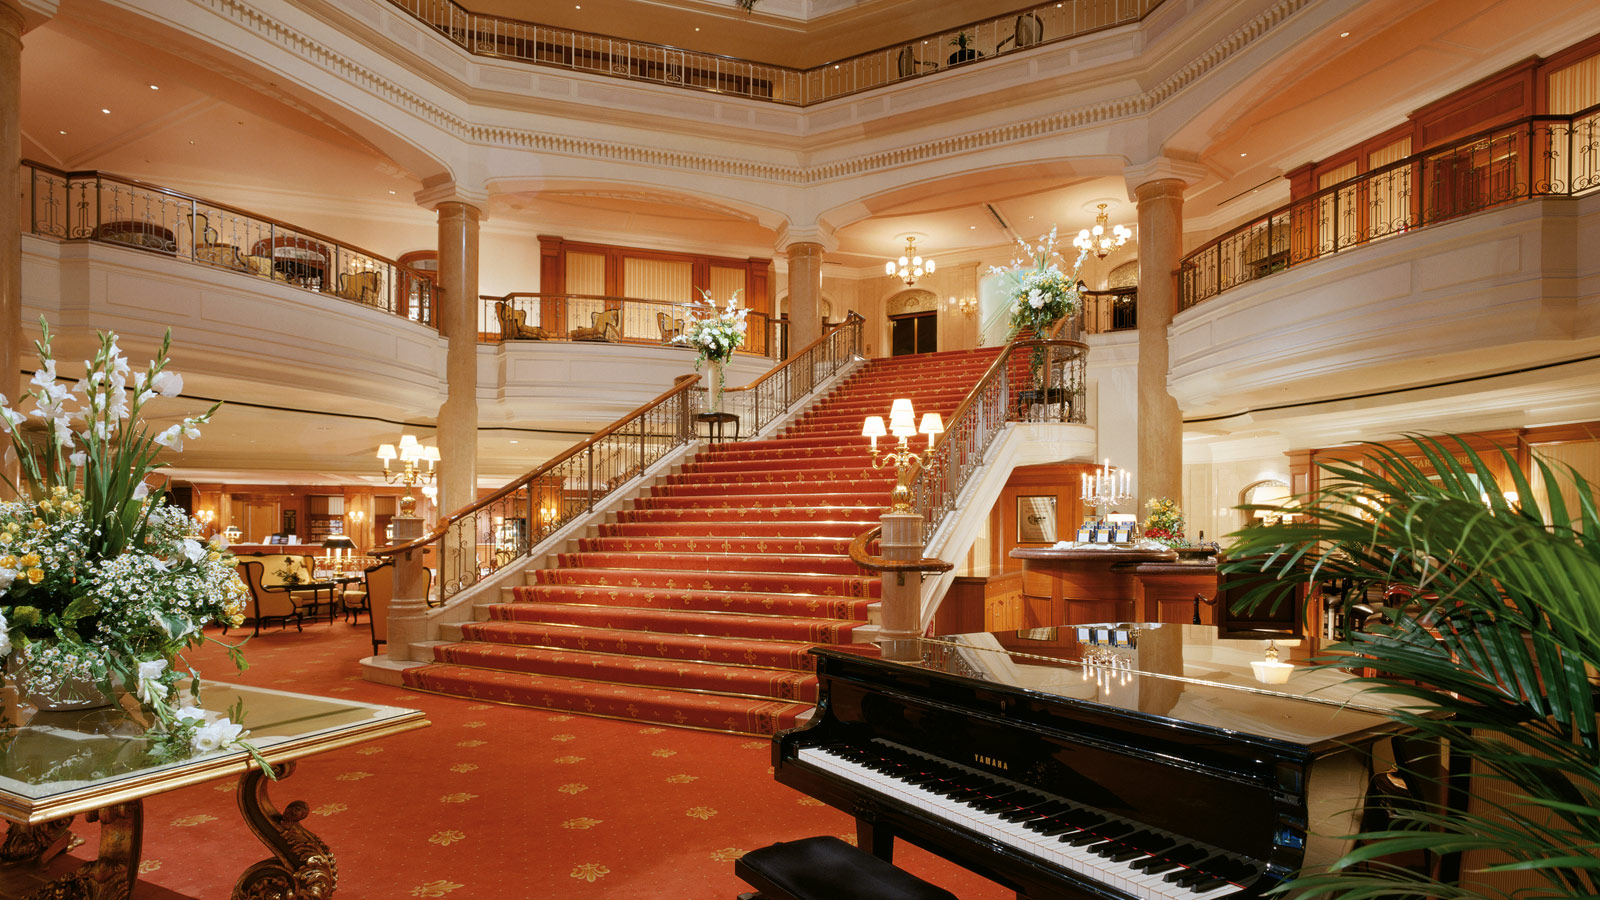 Former staircase of The Westin Grand hotel Berlin